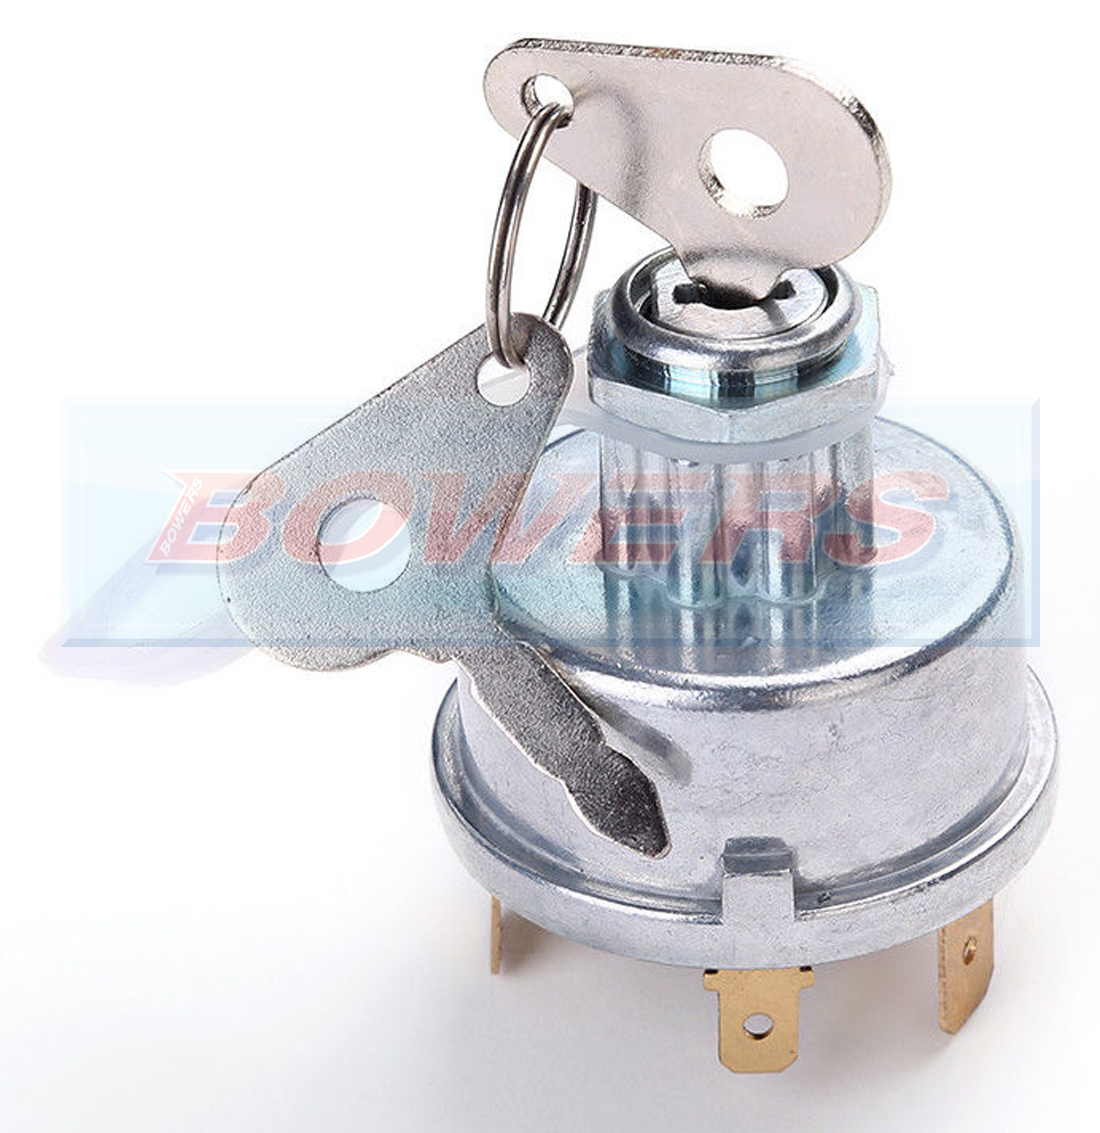 Universal 12V//24V Tractor Ignition Switch Ignition Lock Starter with 2 Keys Fits for Massey Ferguson As for Lucas 35670